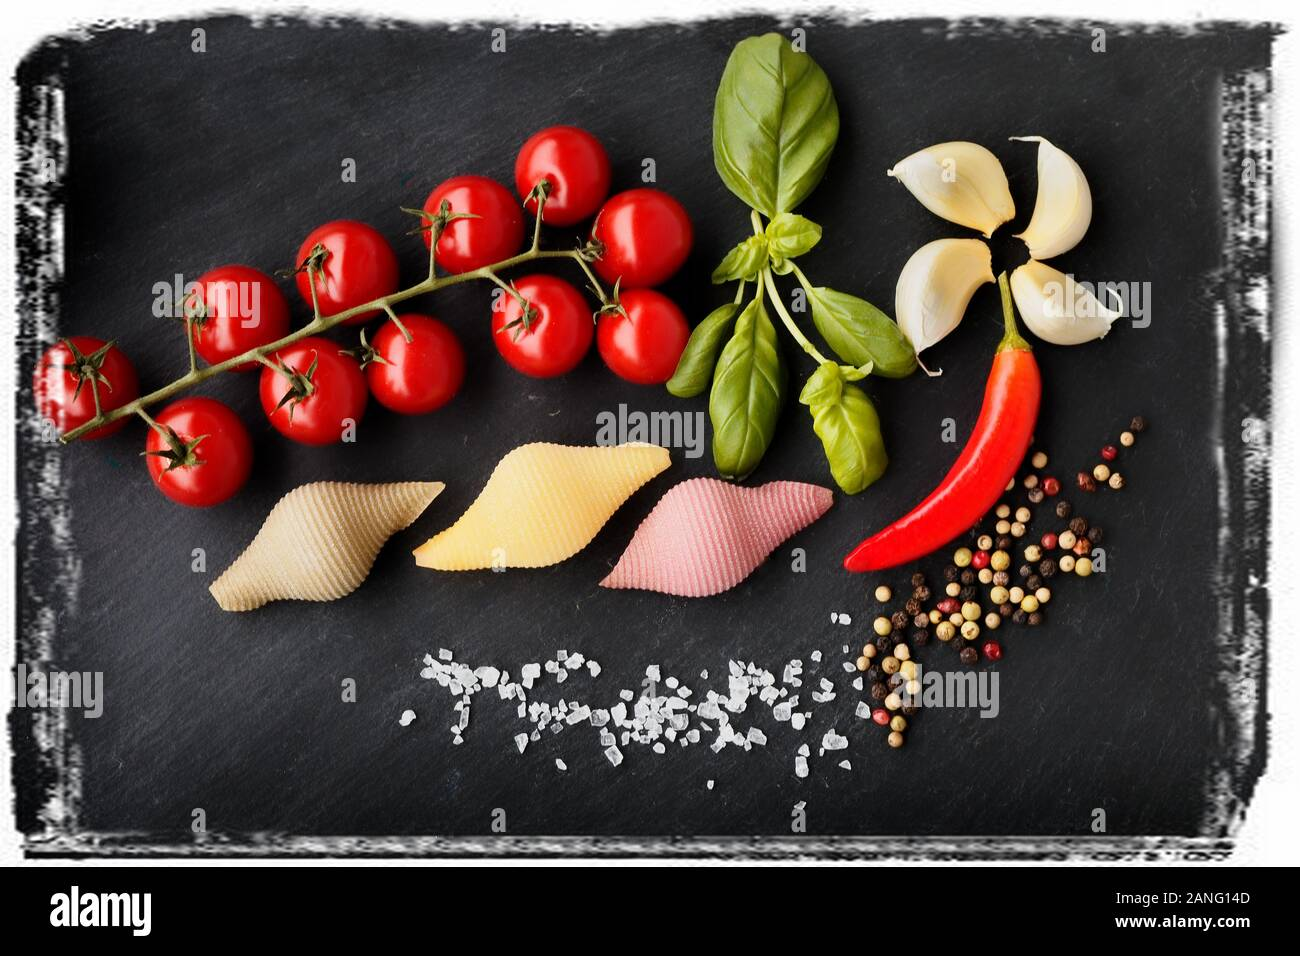 Pasta with vegetables ingredients on a black stone for an Italian pasta dish Stock Photo